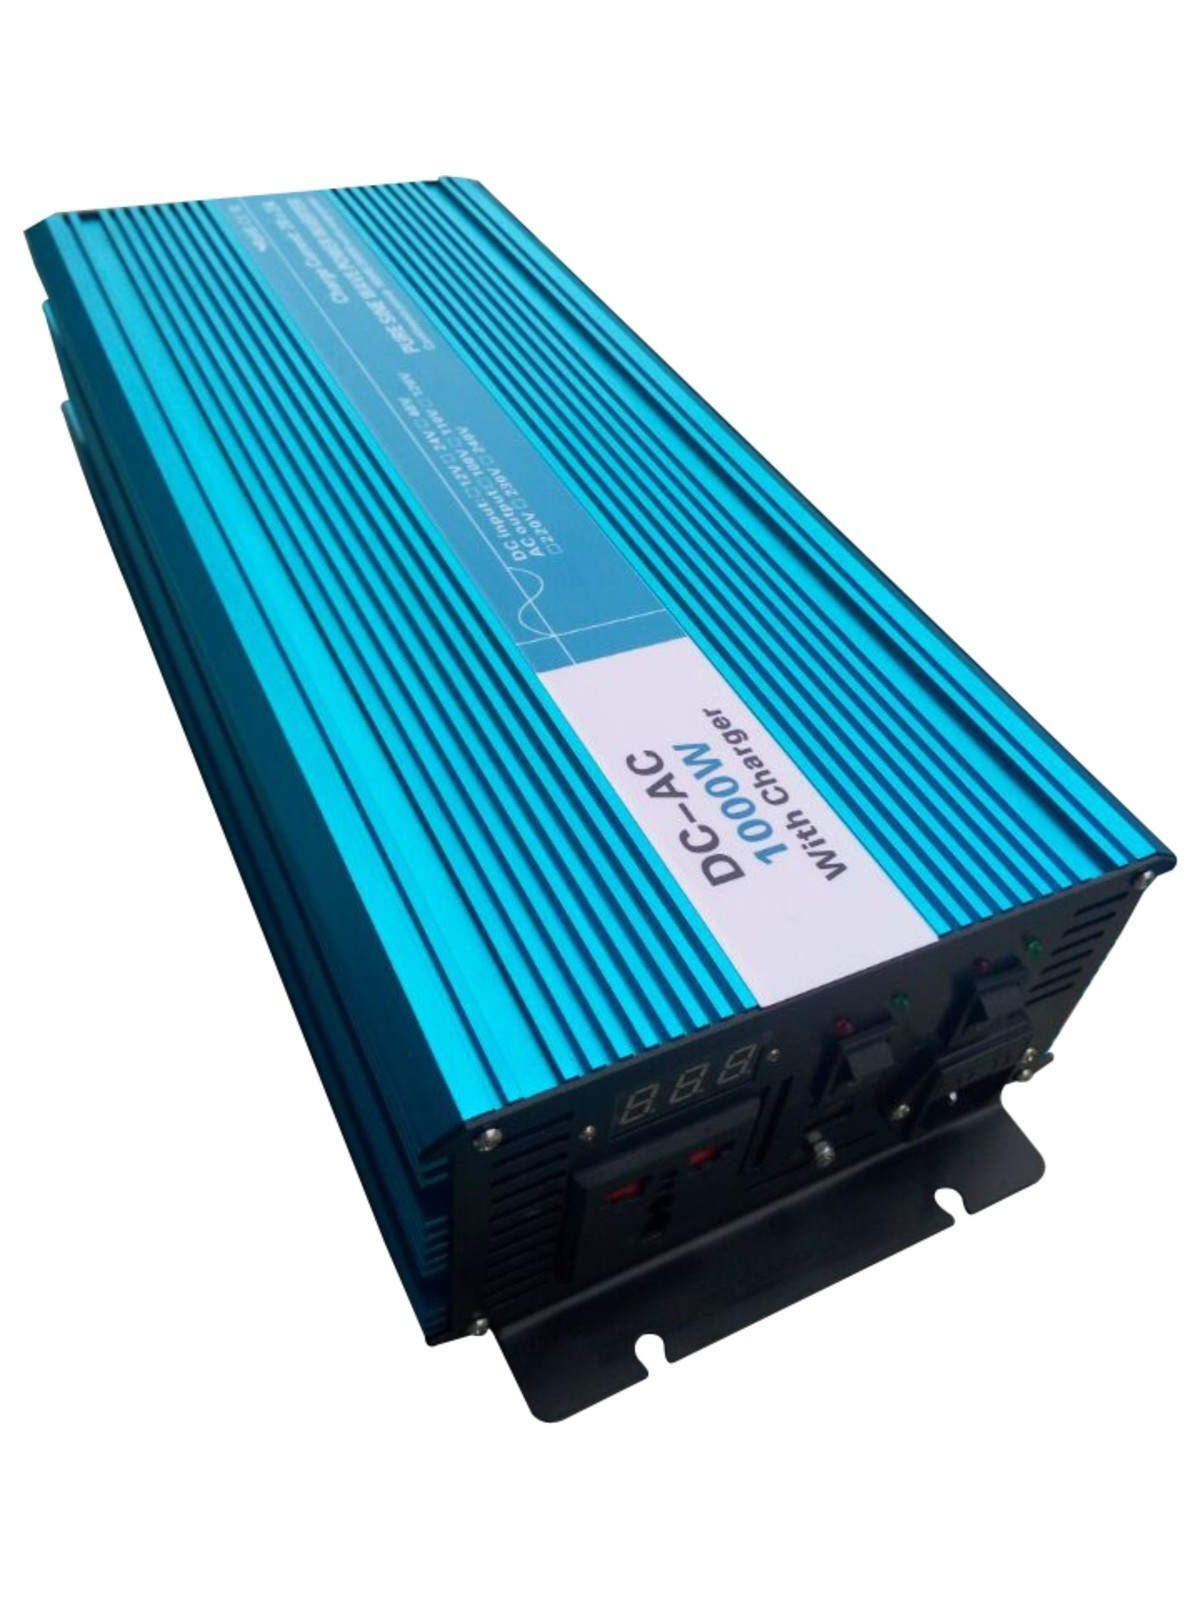 1000W Pure Sine Wave Inverter,DC 12V/24V/48V To AC 110V/220V,off Grid Solar power Inverter,voltage Converter with charger/UPS 5000w pure sine wave inverter dc 12v 24v 48v to ac 110v 220v off grid ups solar inverter voltage converter with charger and ups